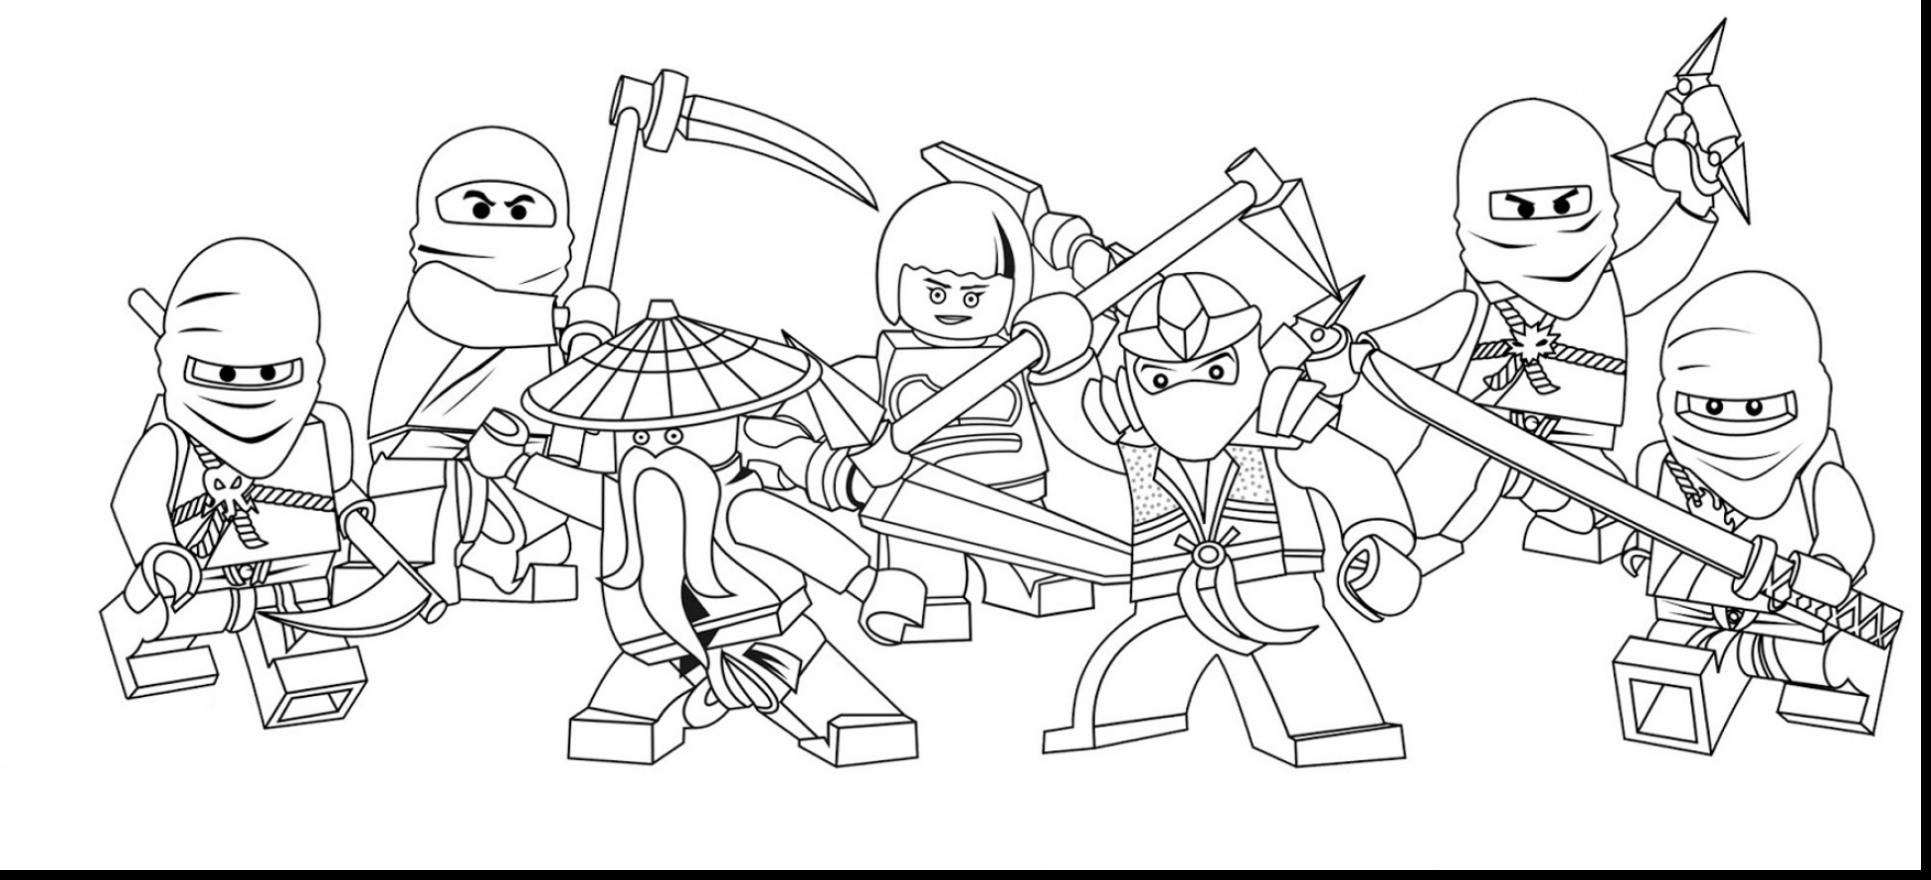 Extravagant Lego Ninjago Coloring Pages Astounding With To To Print